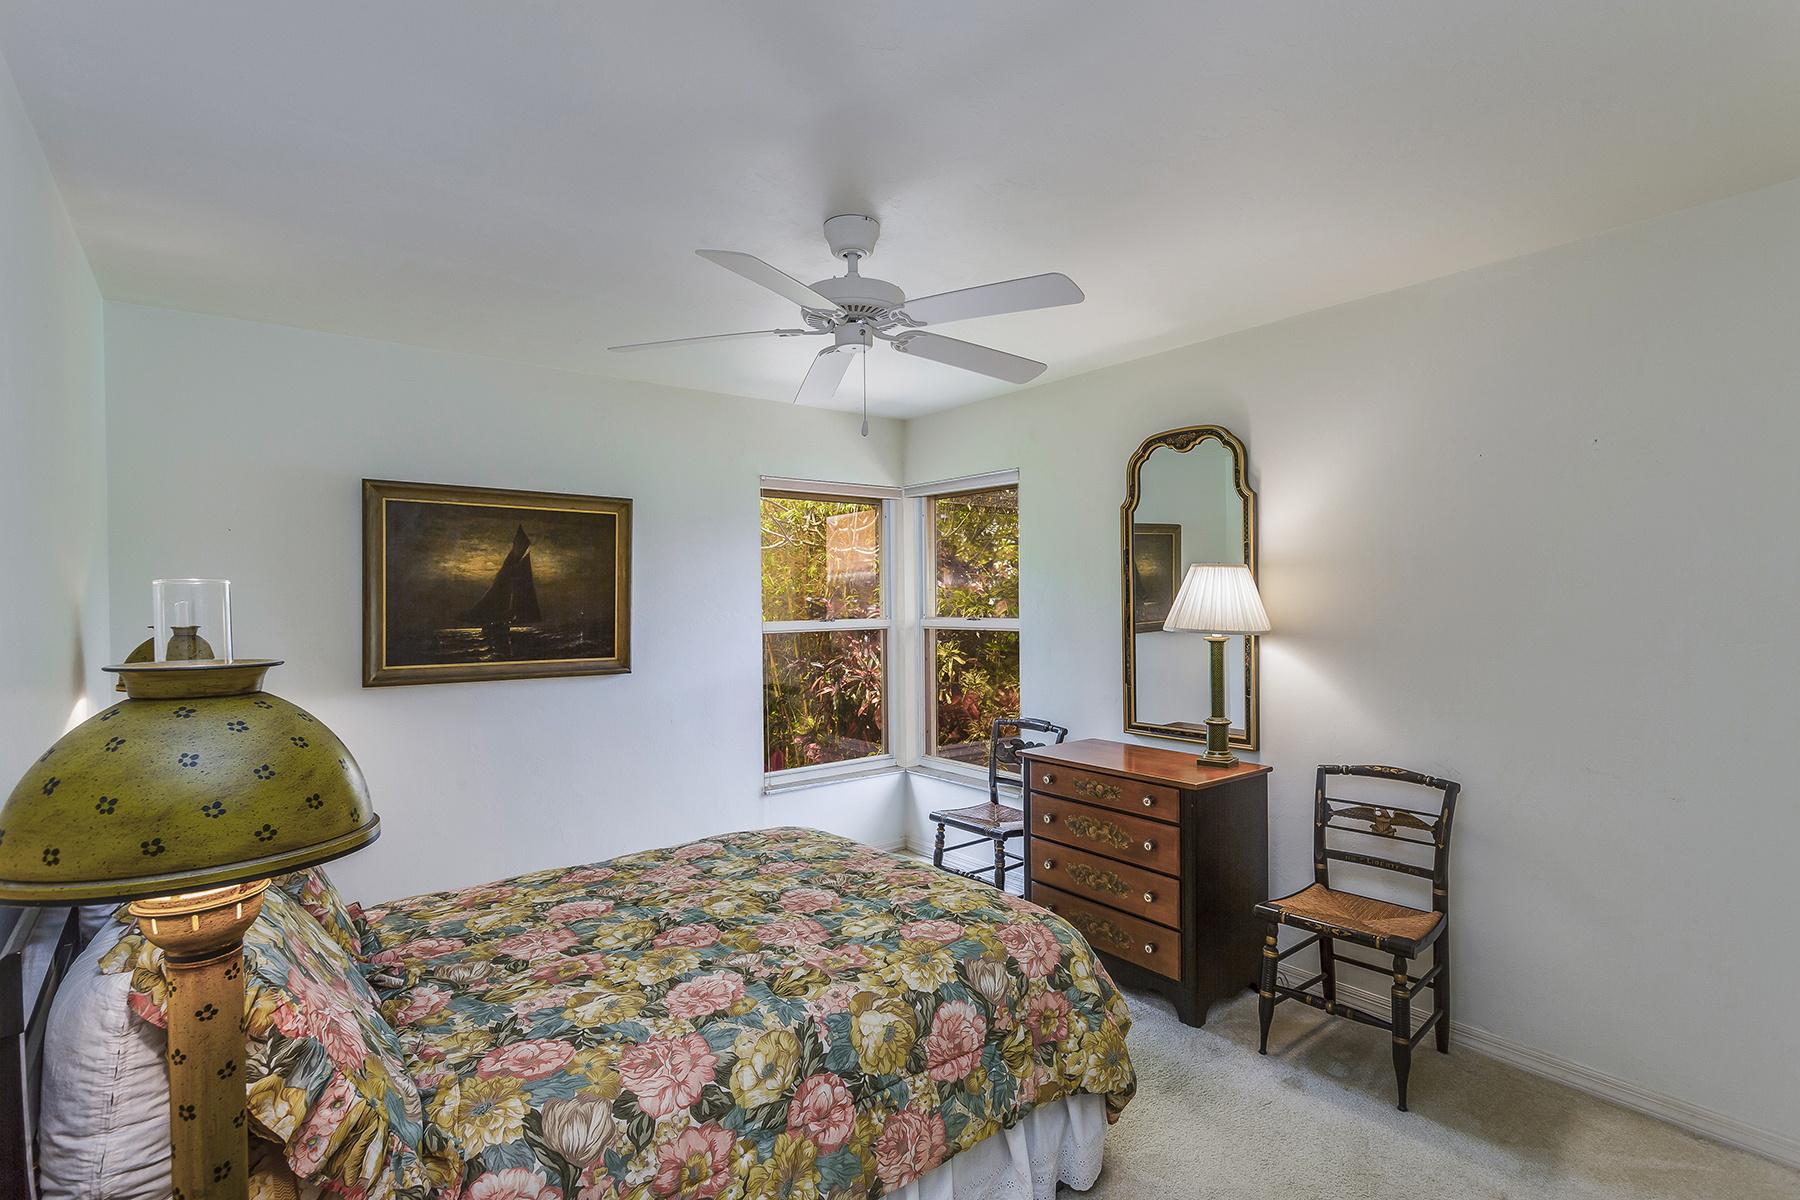 Additional photo for property listing at 505 Pine Grove Ln , Naples, FL 34103 505  Pine Grove Ln,  Naples, Florida 34103 United States